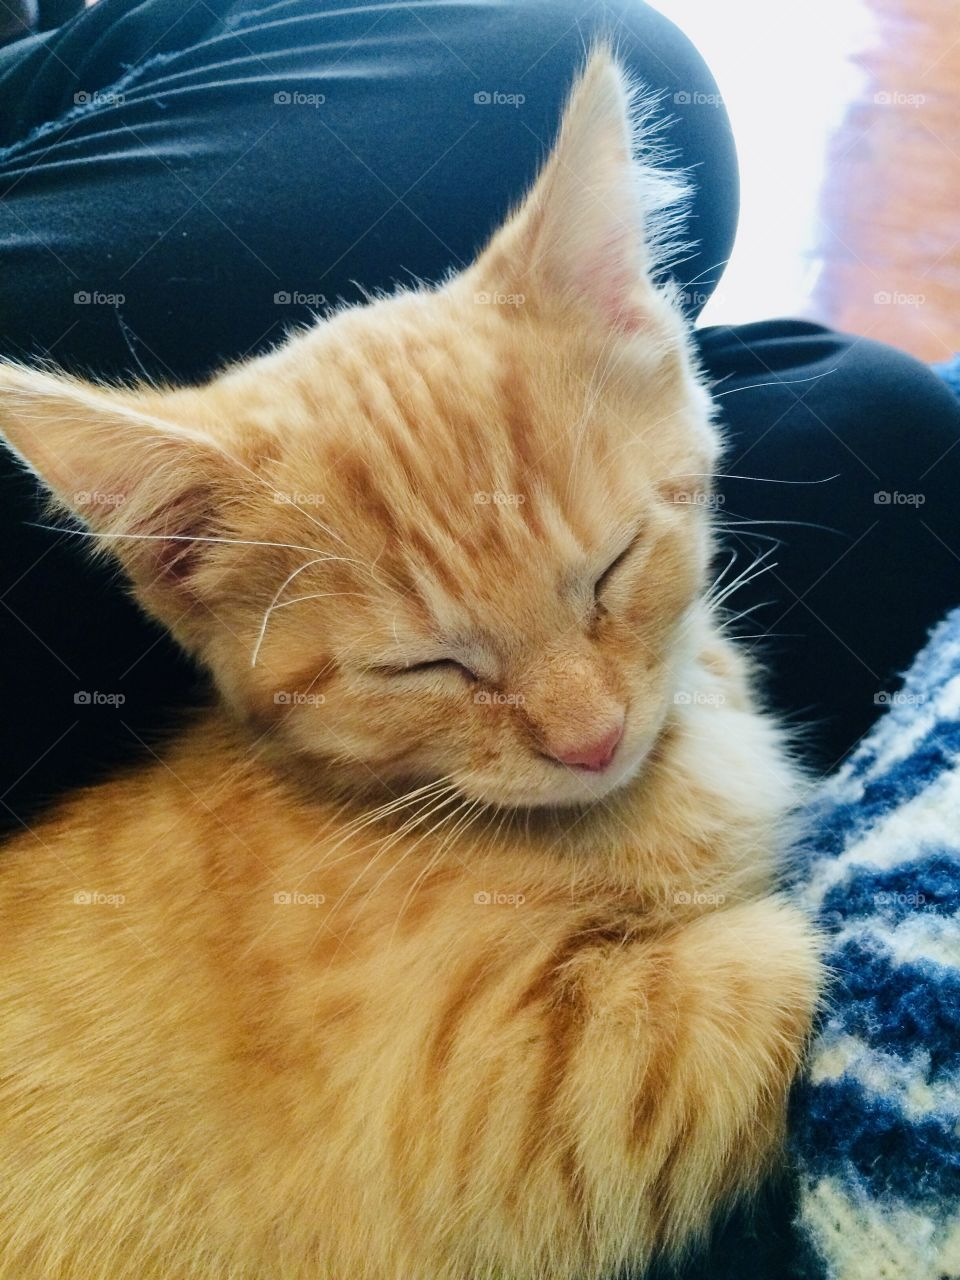 Adorable little orange tabby kitten all cuddled up in white and blue blanket with eyes closed.